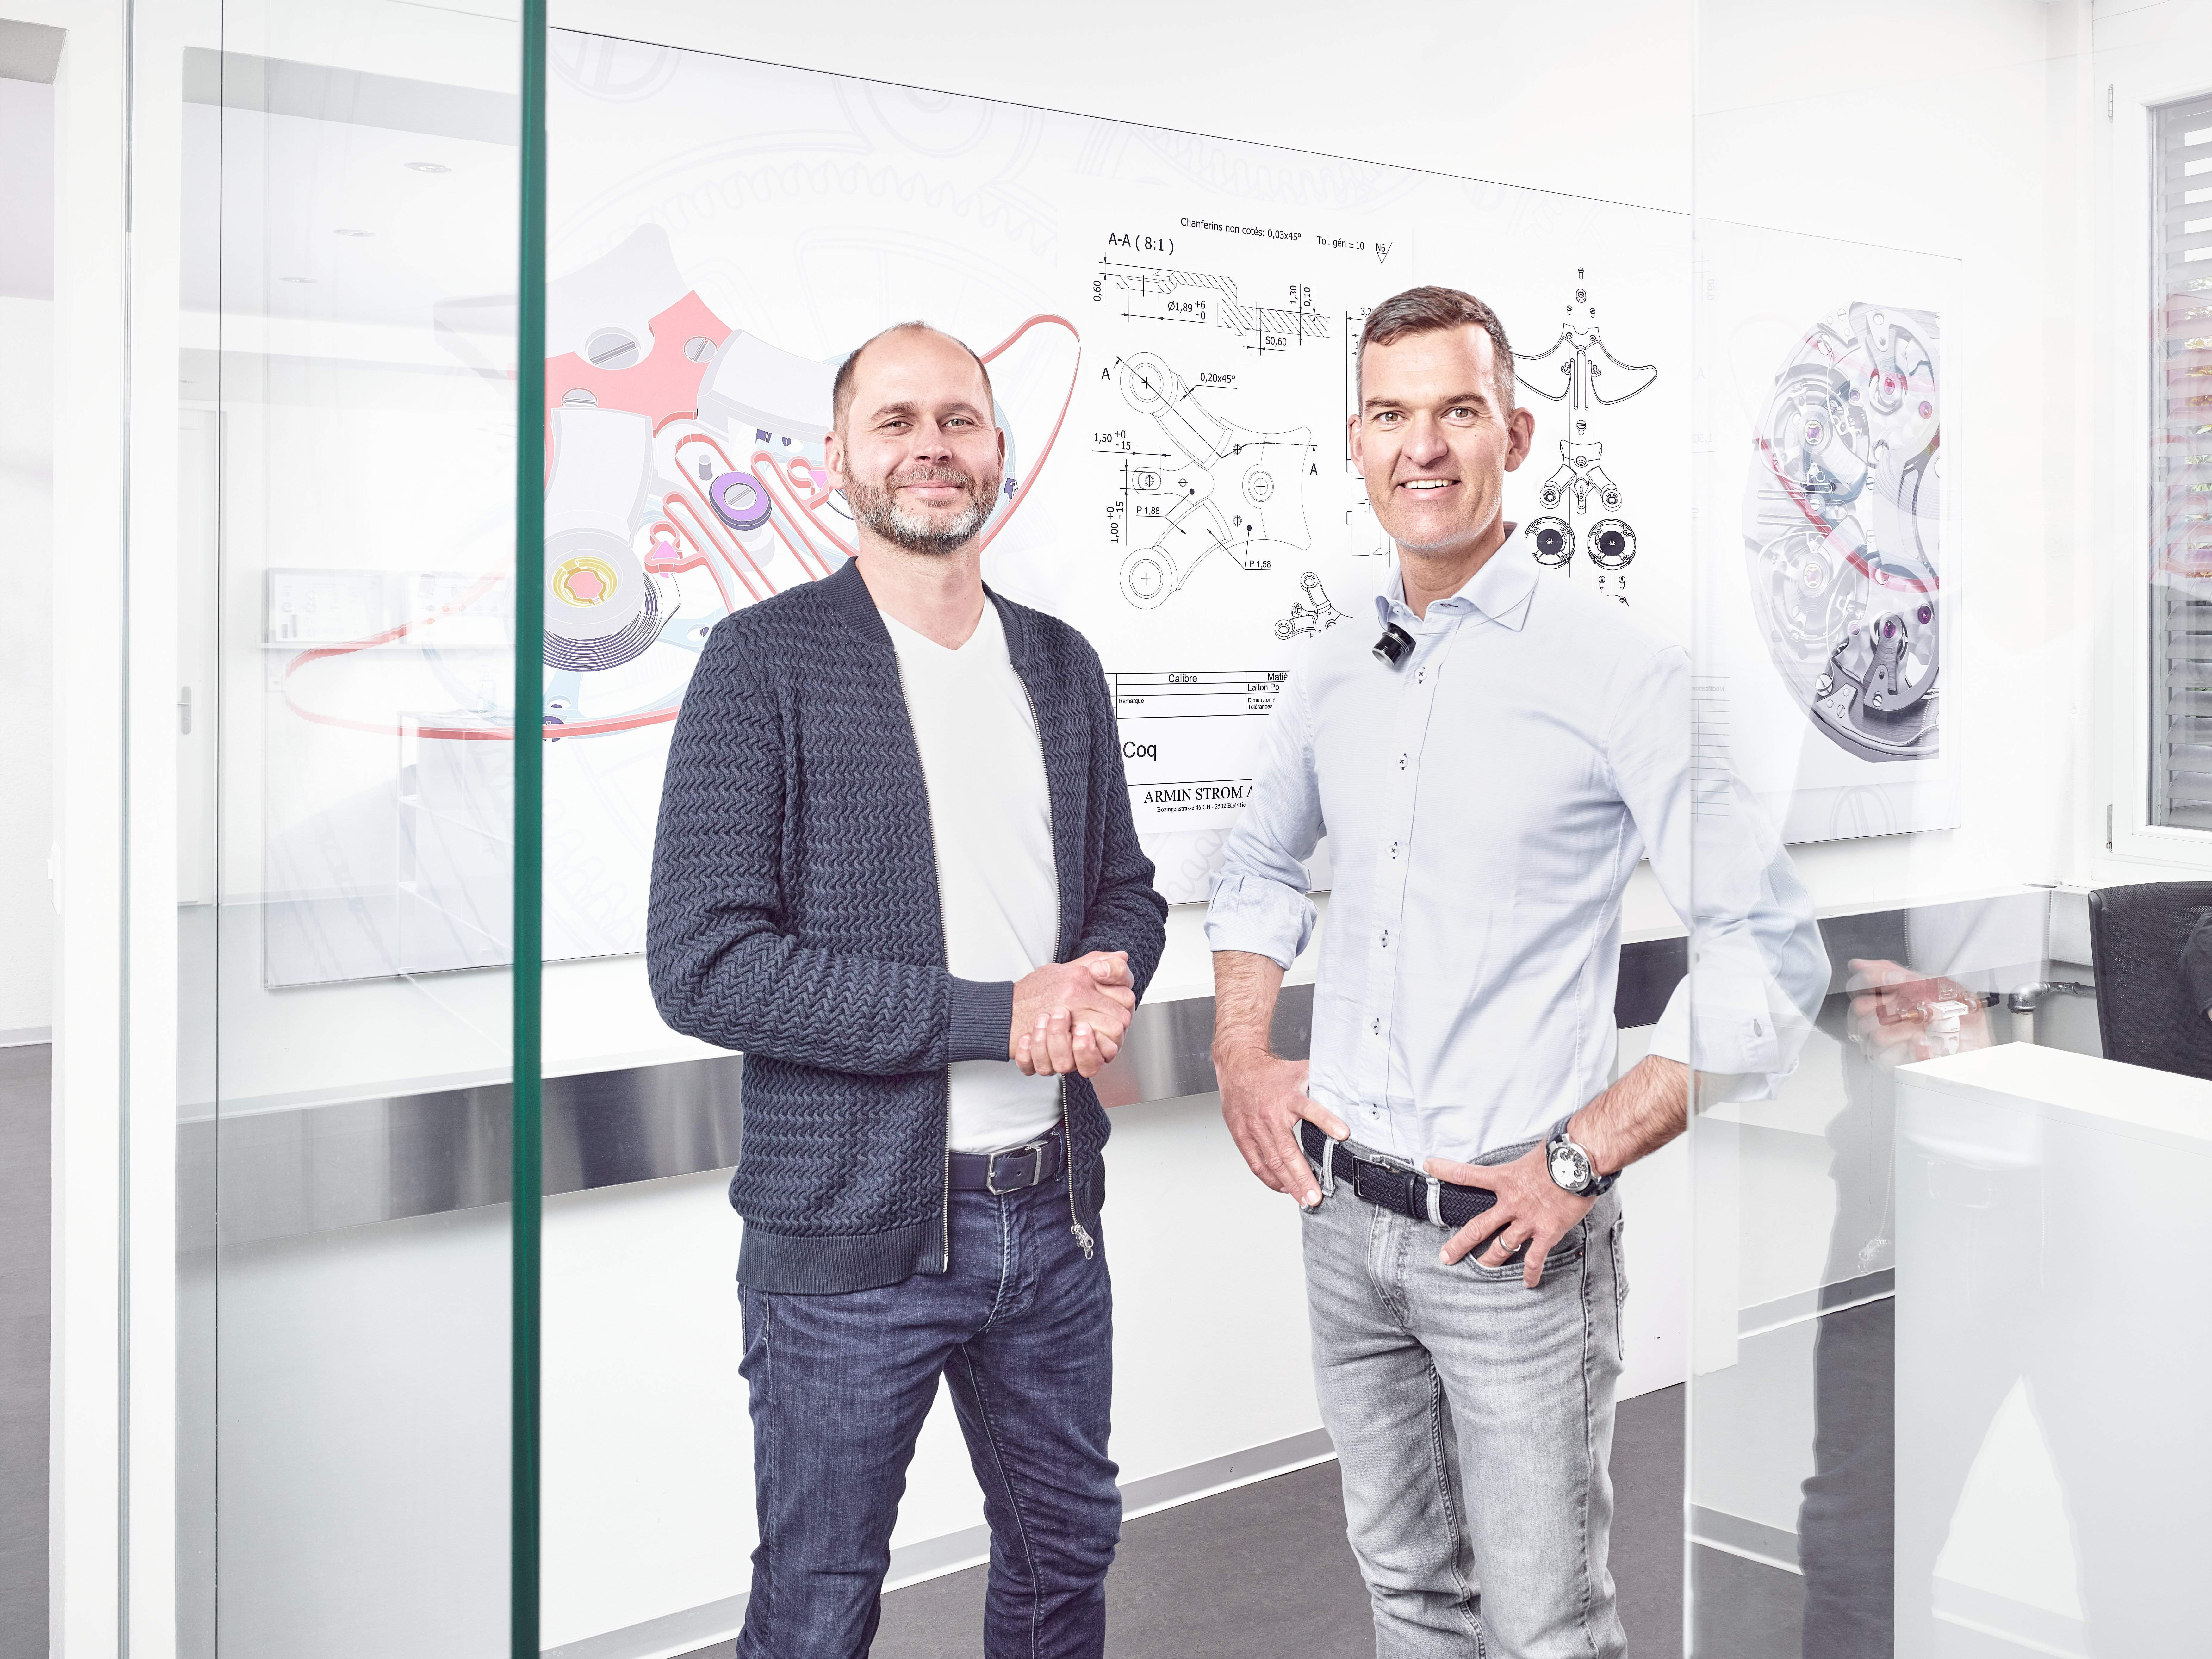 Armin Strom founders: Serge Michel and Claude Greisler, Image: Armin Strom